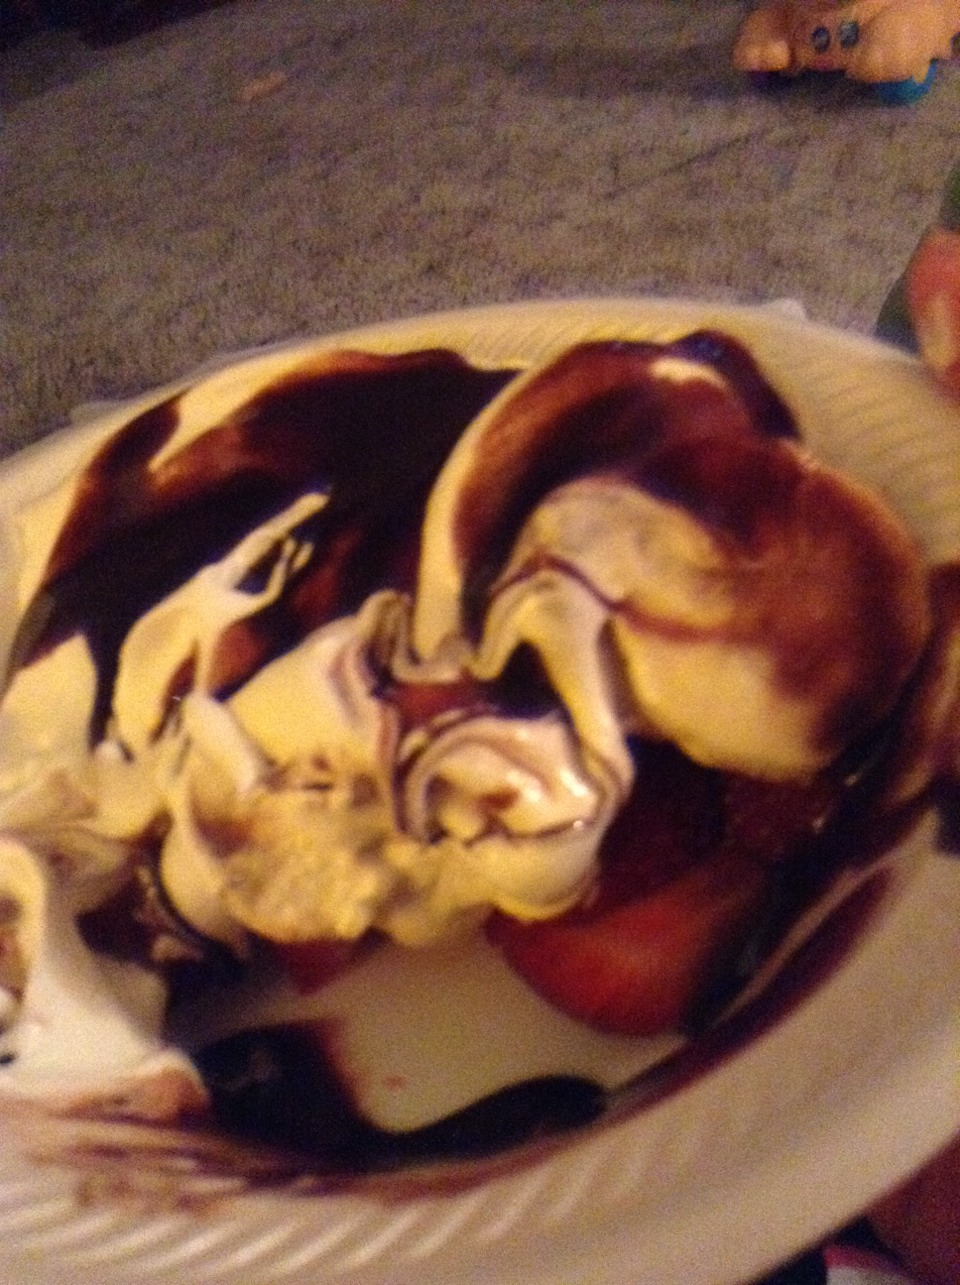 Sliced strawberries bananas low fat whip cream and a drizzle of chocolate syrup. = 150calories /serving